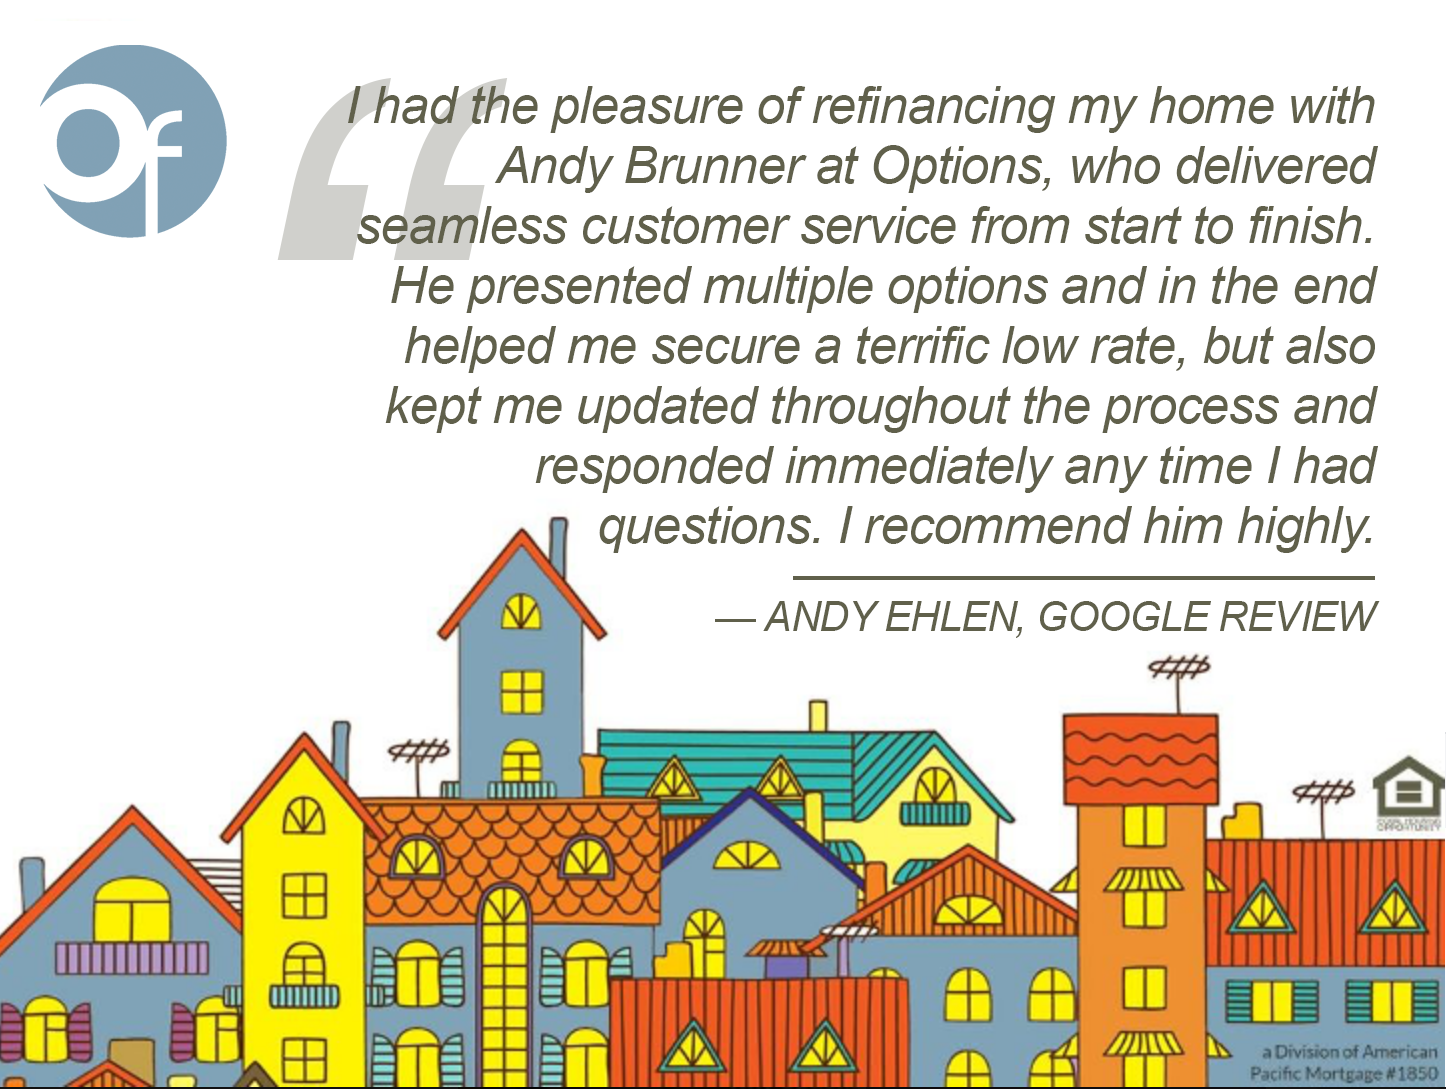 I had the pleasure of refinancing my home with Andy Brunner at Options, who delivered seamless customer service from start to finish. He presented multiple options and in the end helped me secure a terrific low rate, but also kept me updated throughout the process and responded immediately any time I had questions. I recommend him highly.